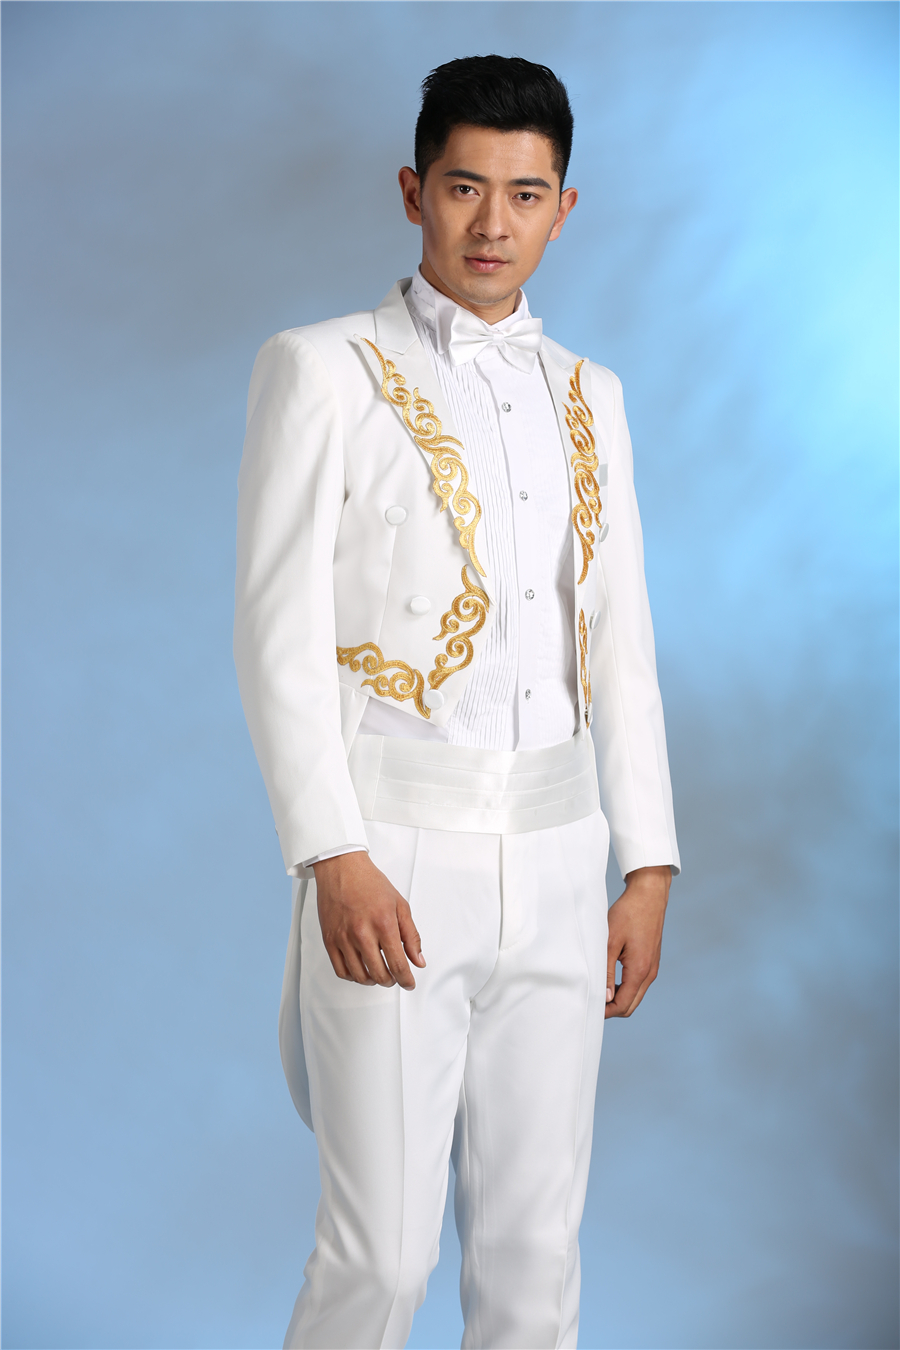 Fancy Funny Wedding Suits Crest - Wedding Dress Ideas ...